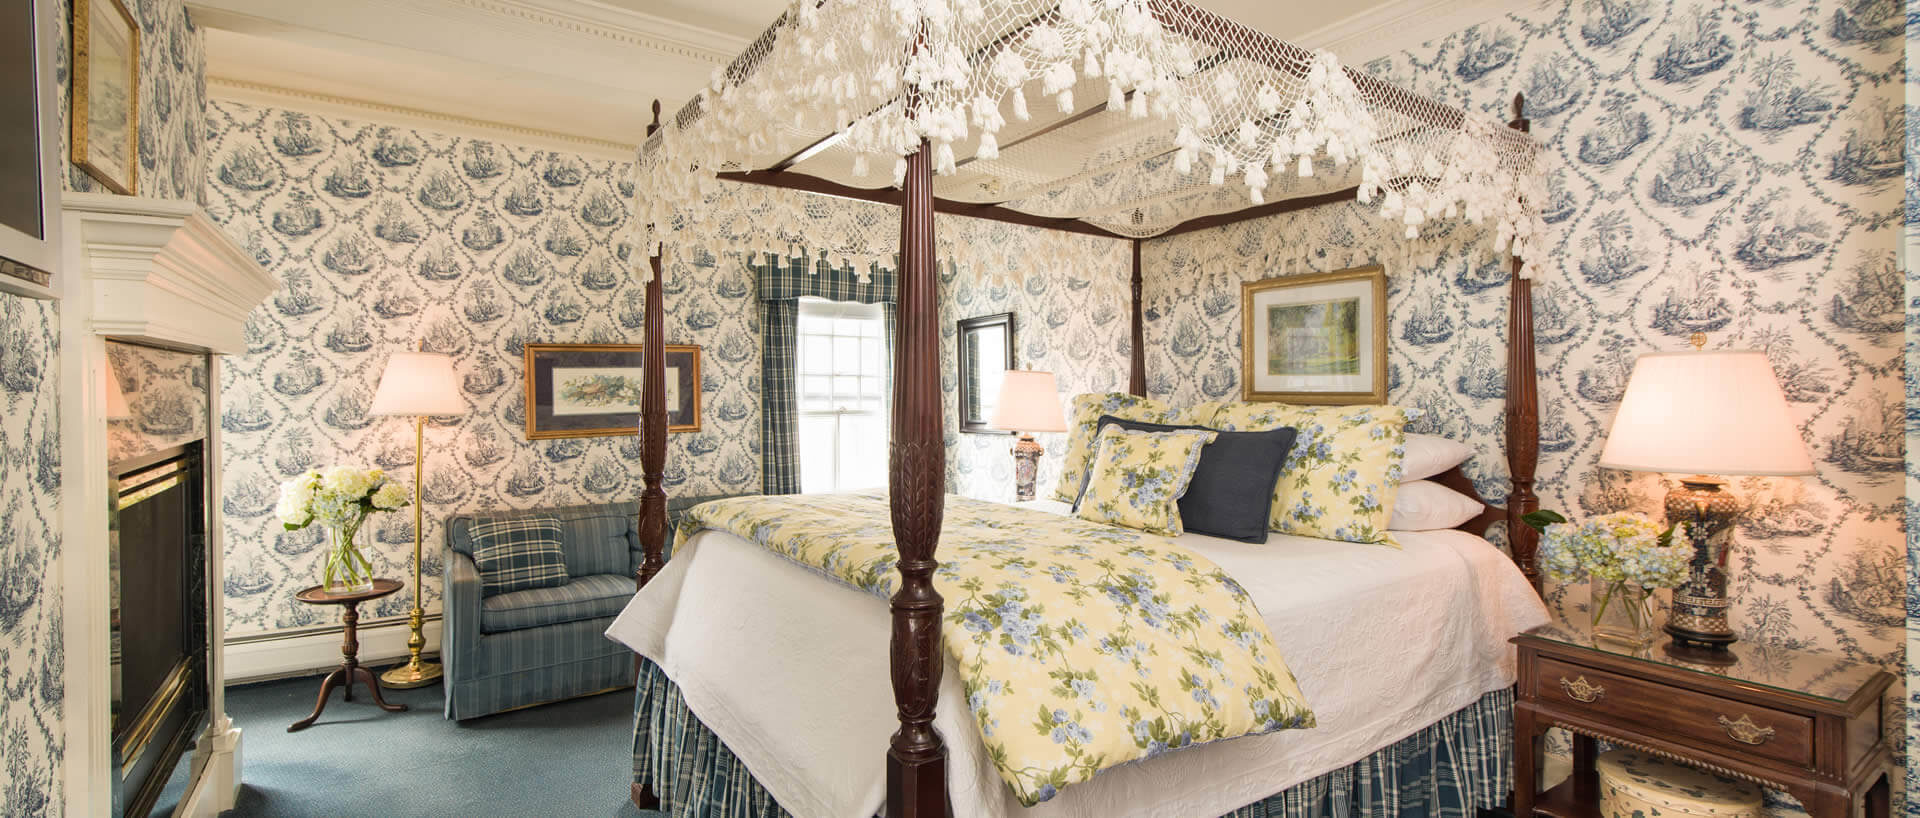 Elegant room with a large canopy bed, blue patterned wallpaper, blue carpets and a fireplace.